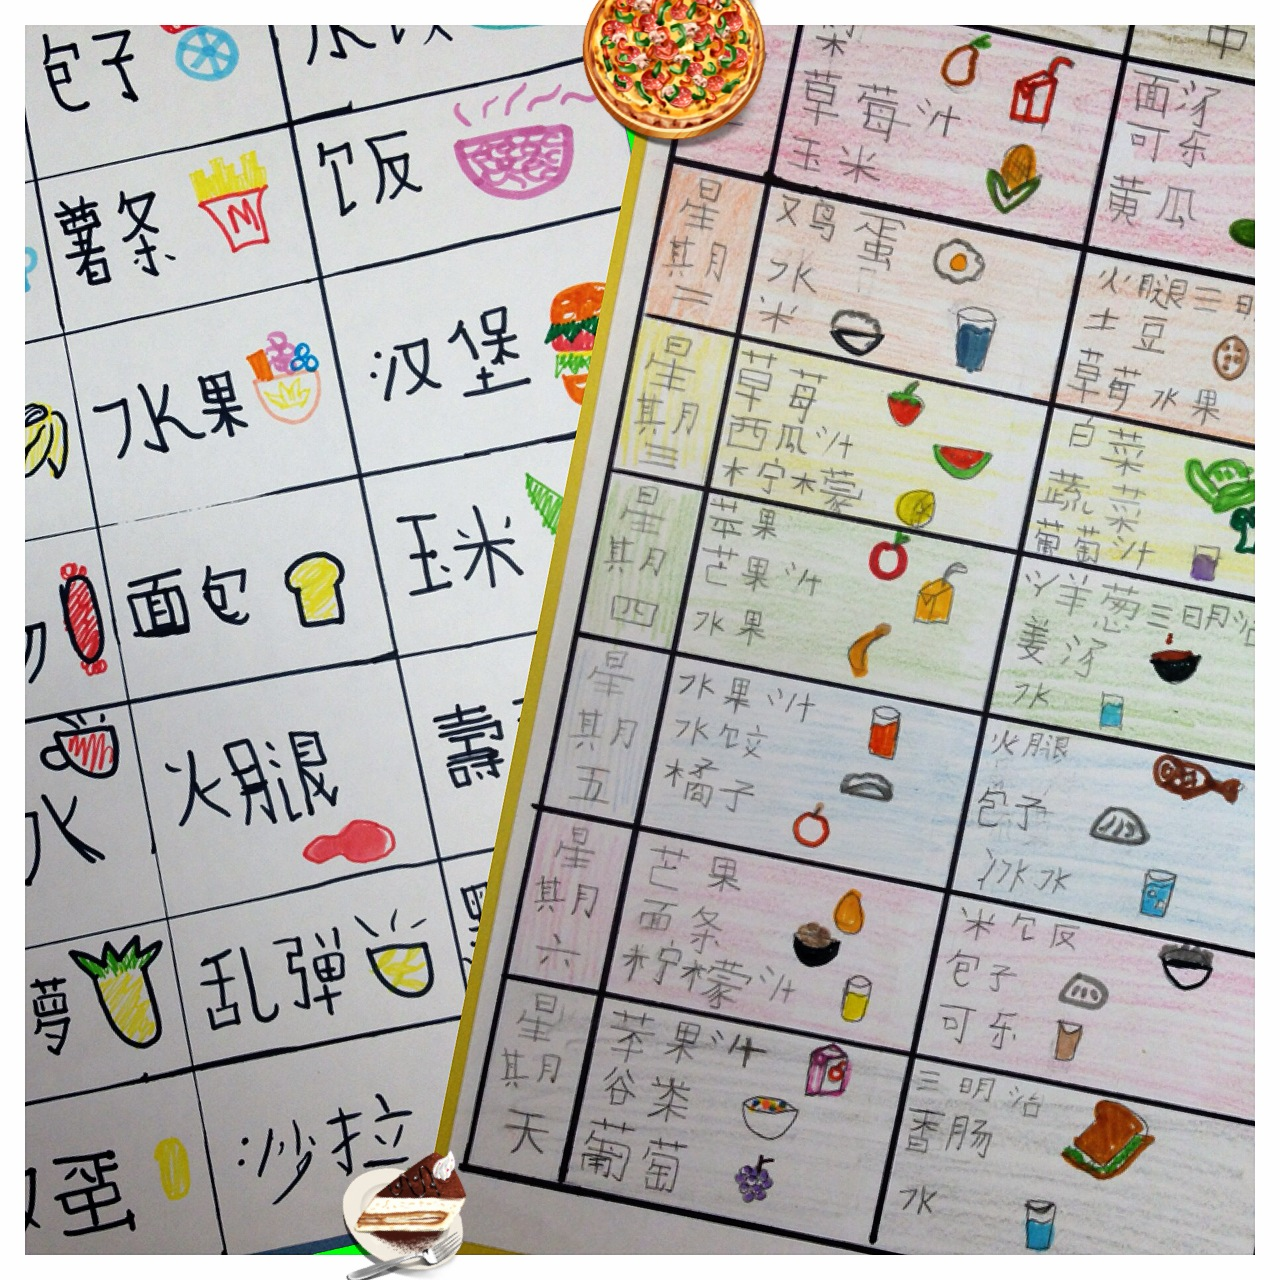 Chinese class projects and activities | Mandarin For Me 中文与我